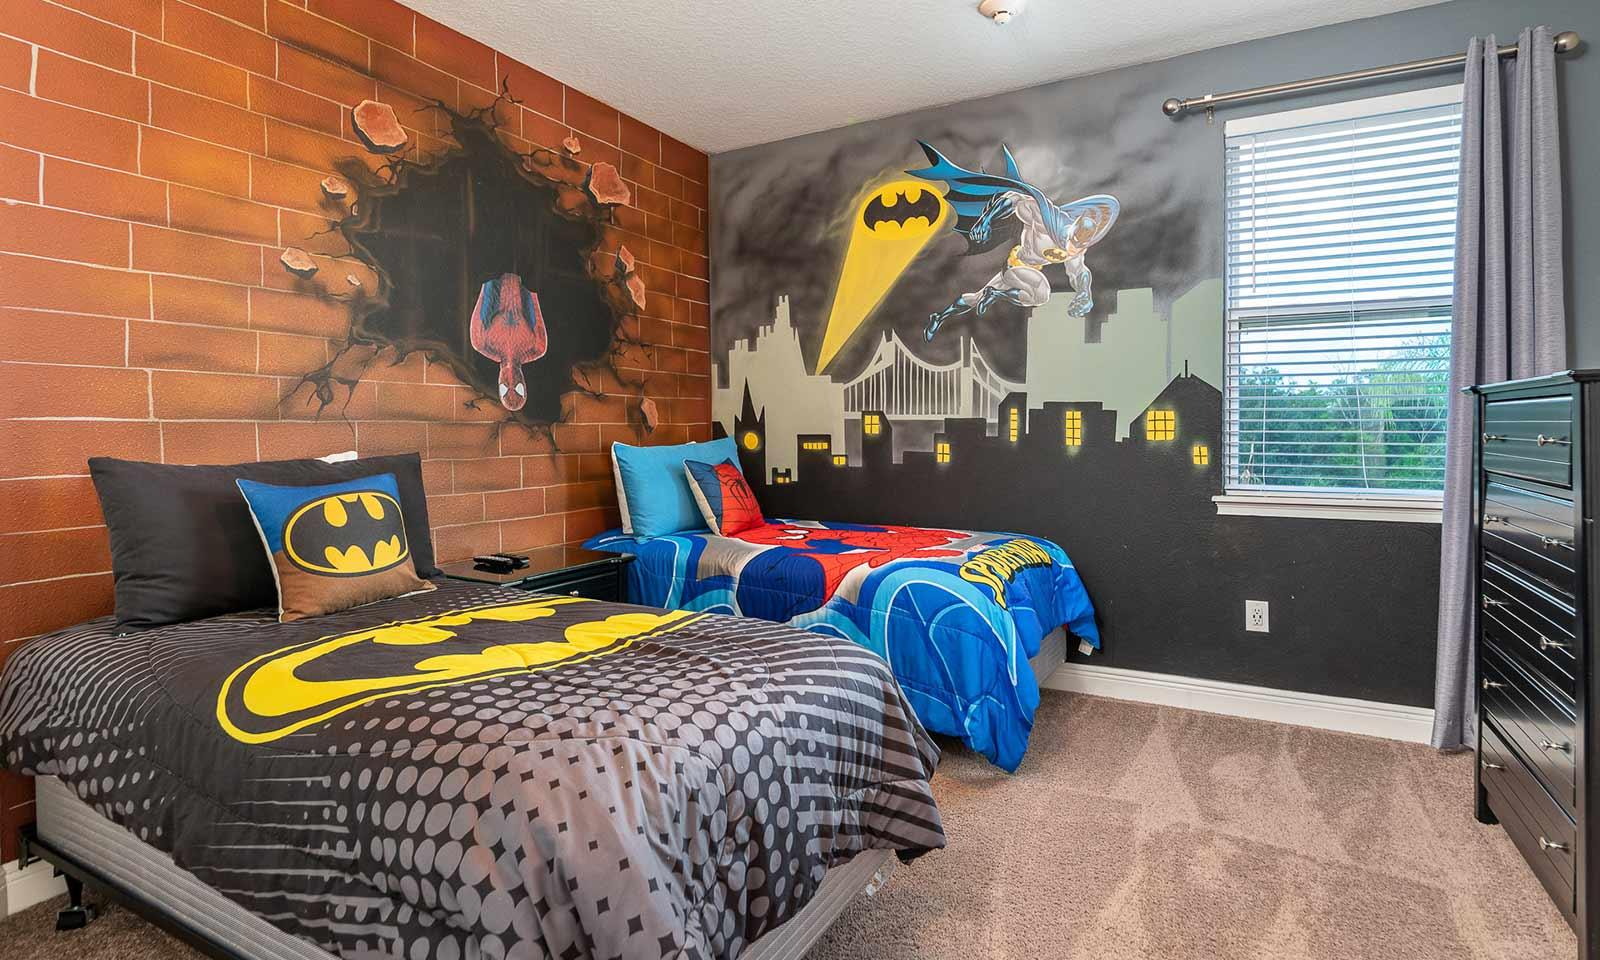 Property Image 1 - Large House with Hero Themed Room in Encore